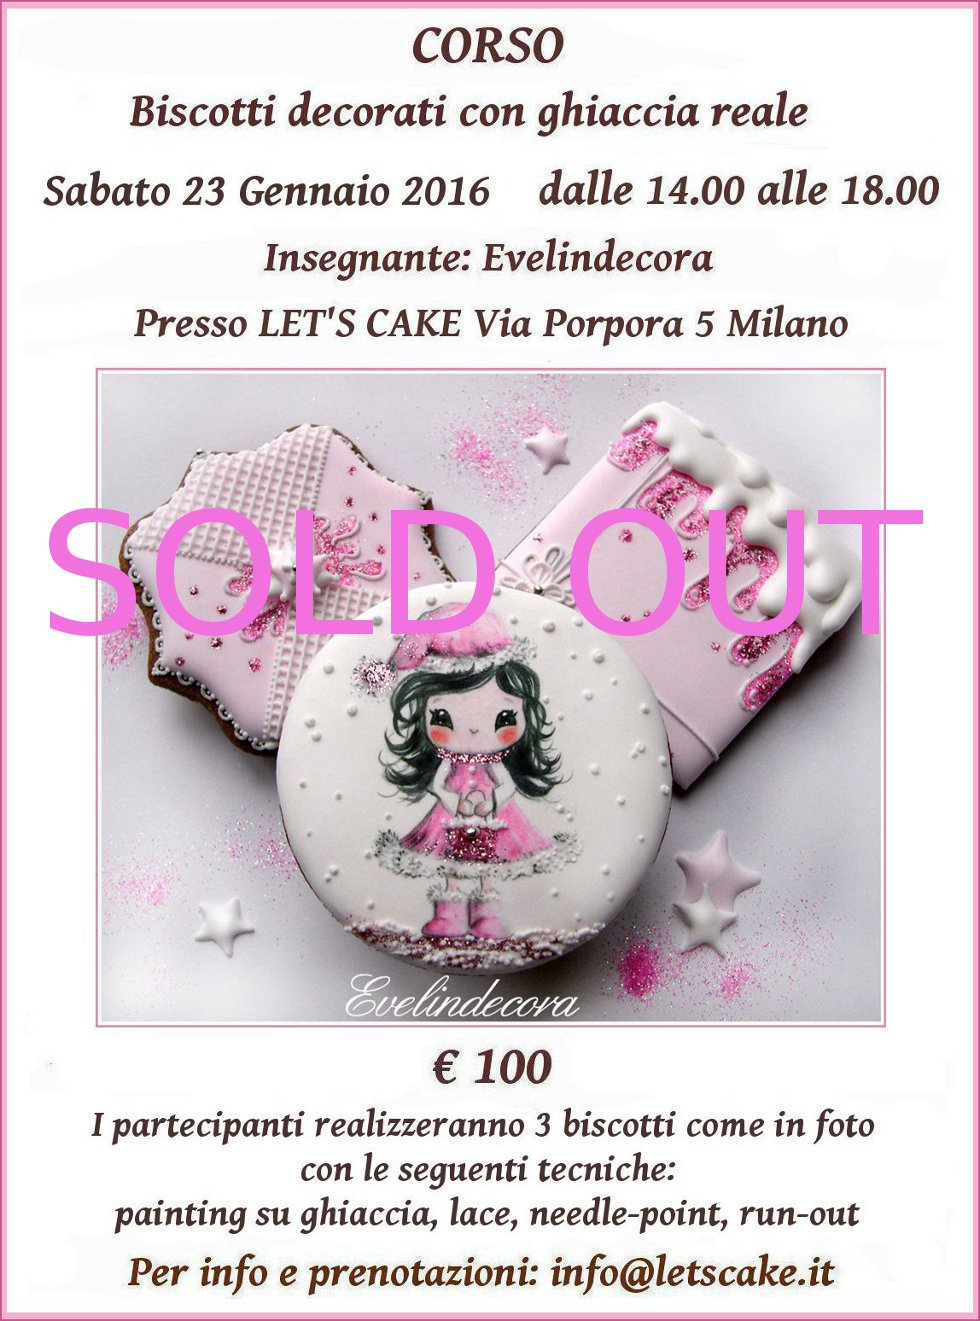 biscotti decorati - corso ghiaccia reale 2016 corso Evelindecora Milano I partecipanti realizzeranno tre biscotti decorati come in foto con le seguenti tecniche: painting su ghiaccia, lace, run out e needle point.